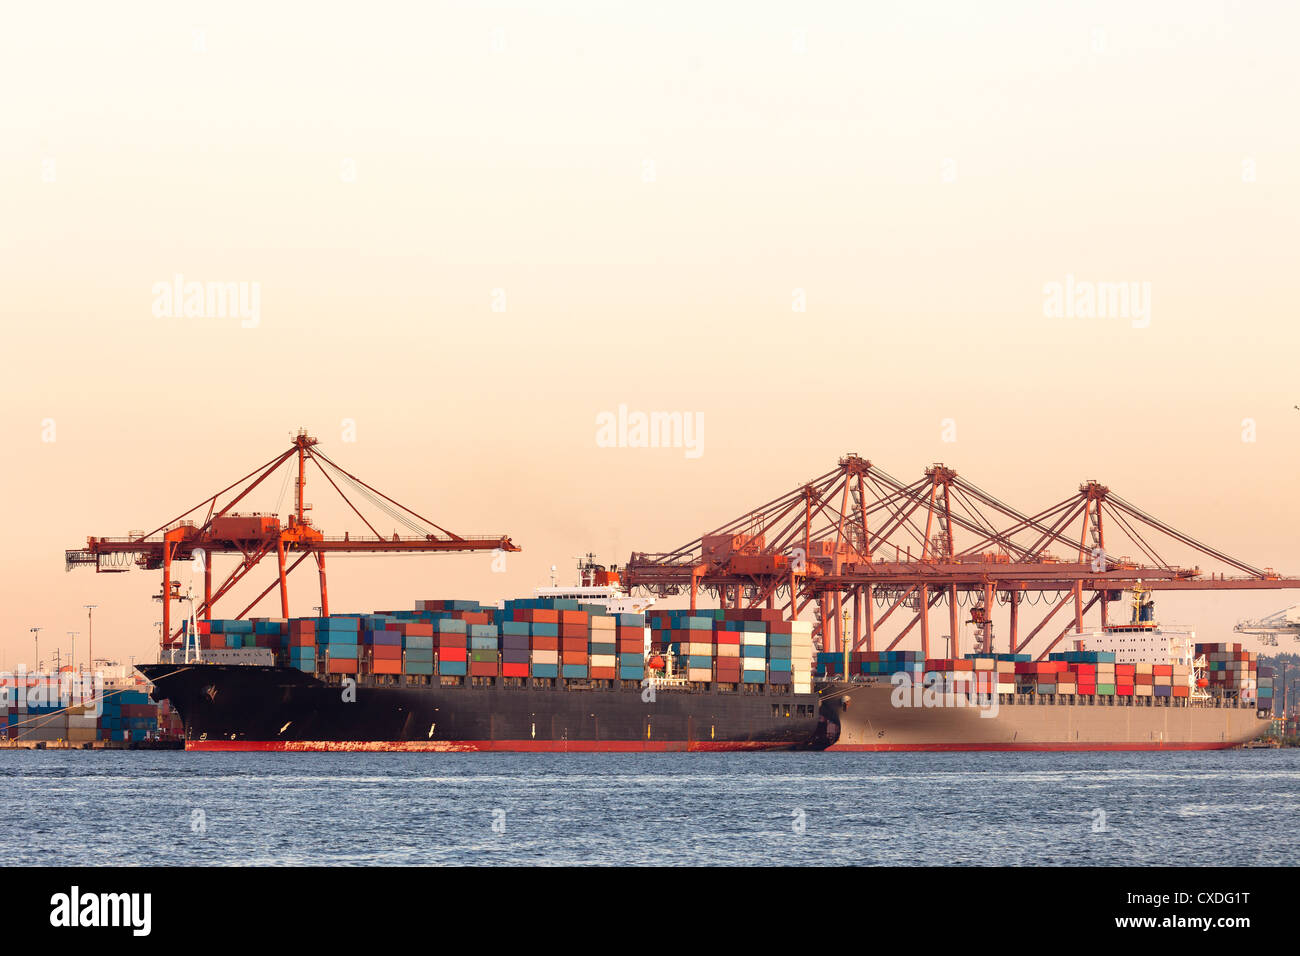 Cargo ships with containers at port - Stock Image